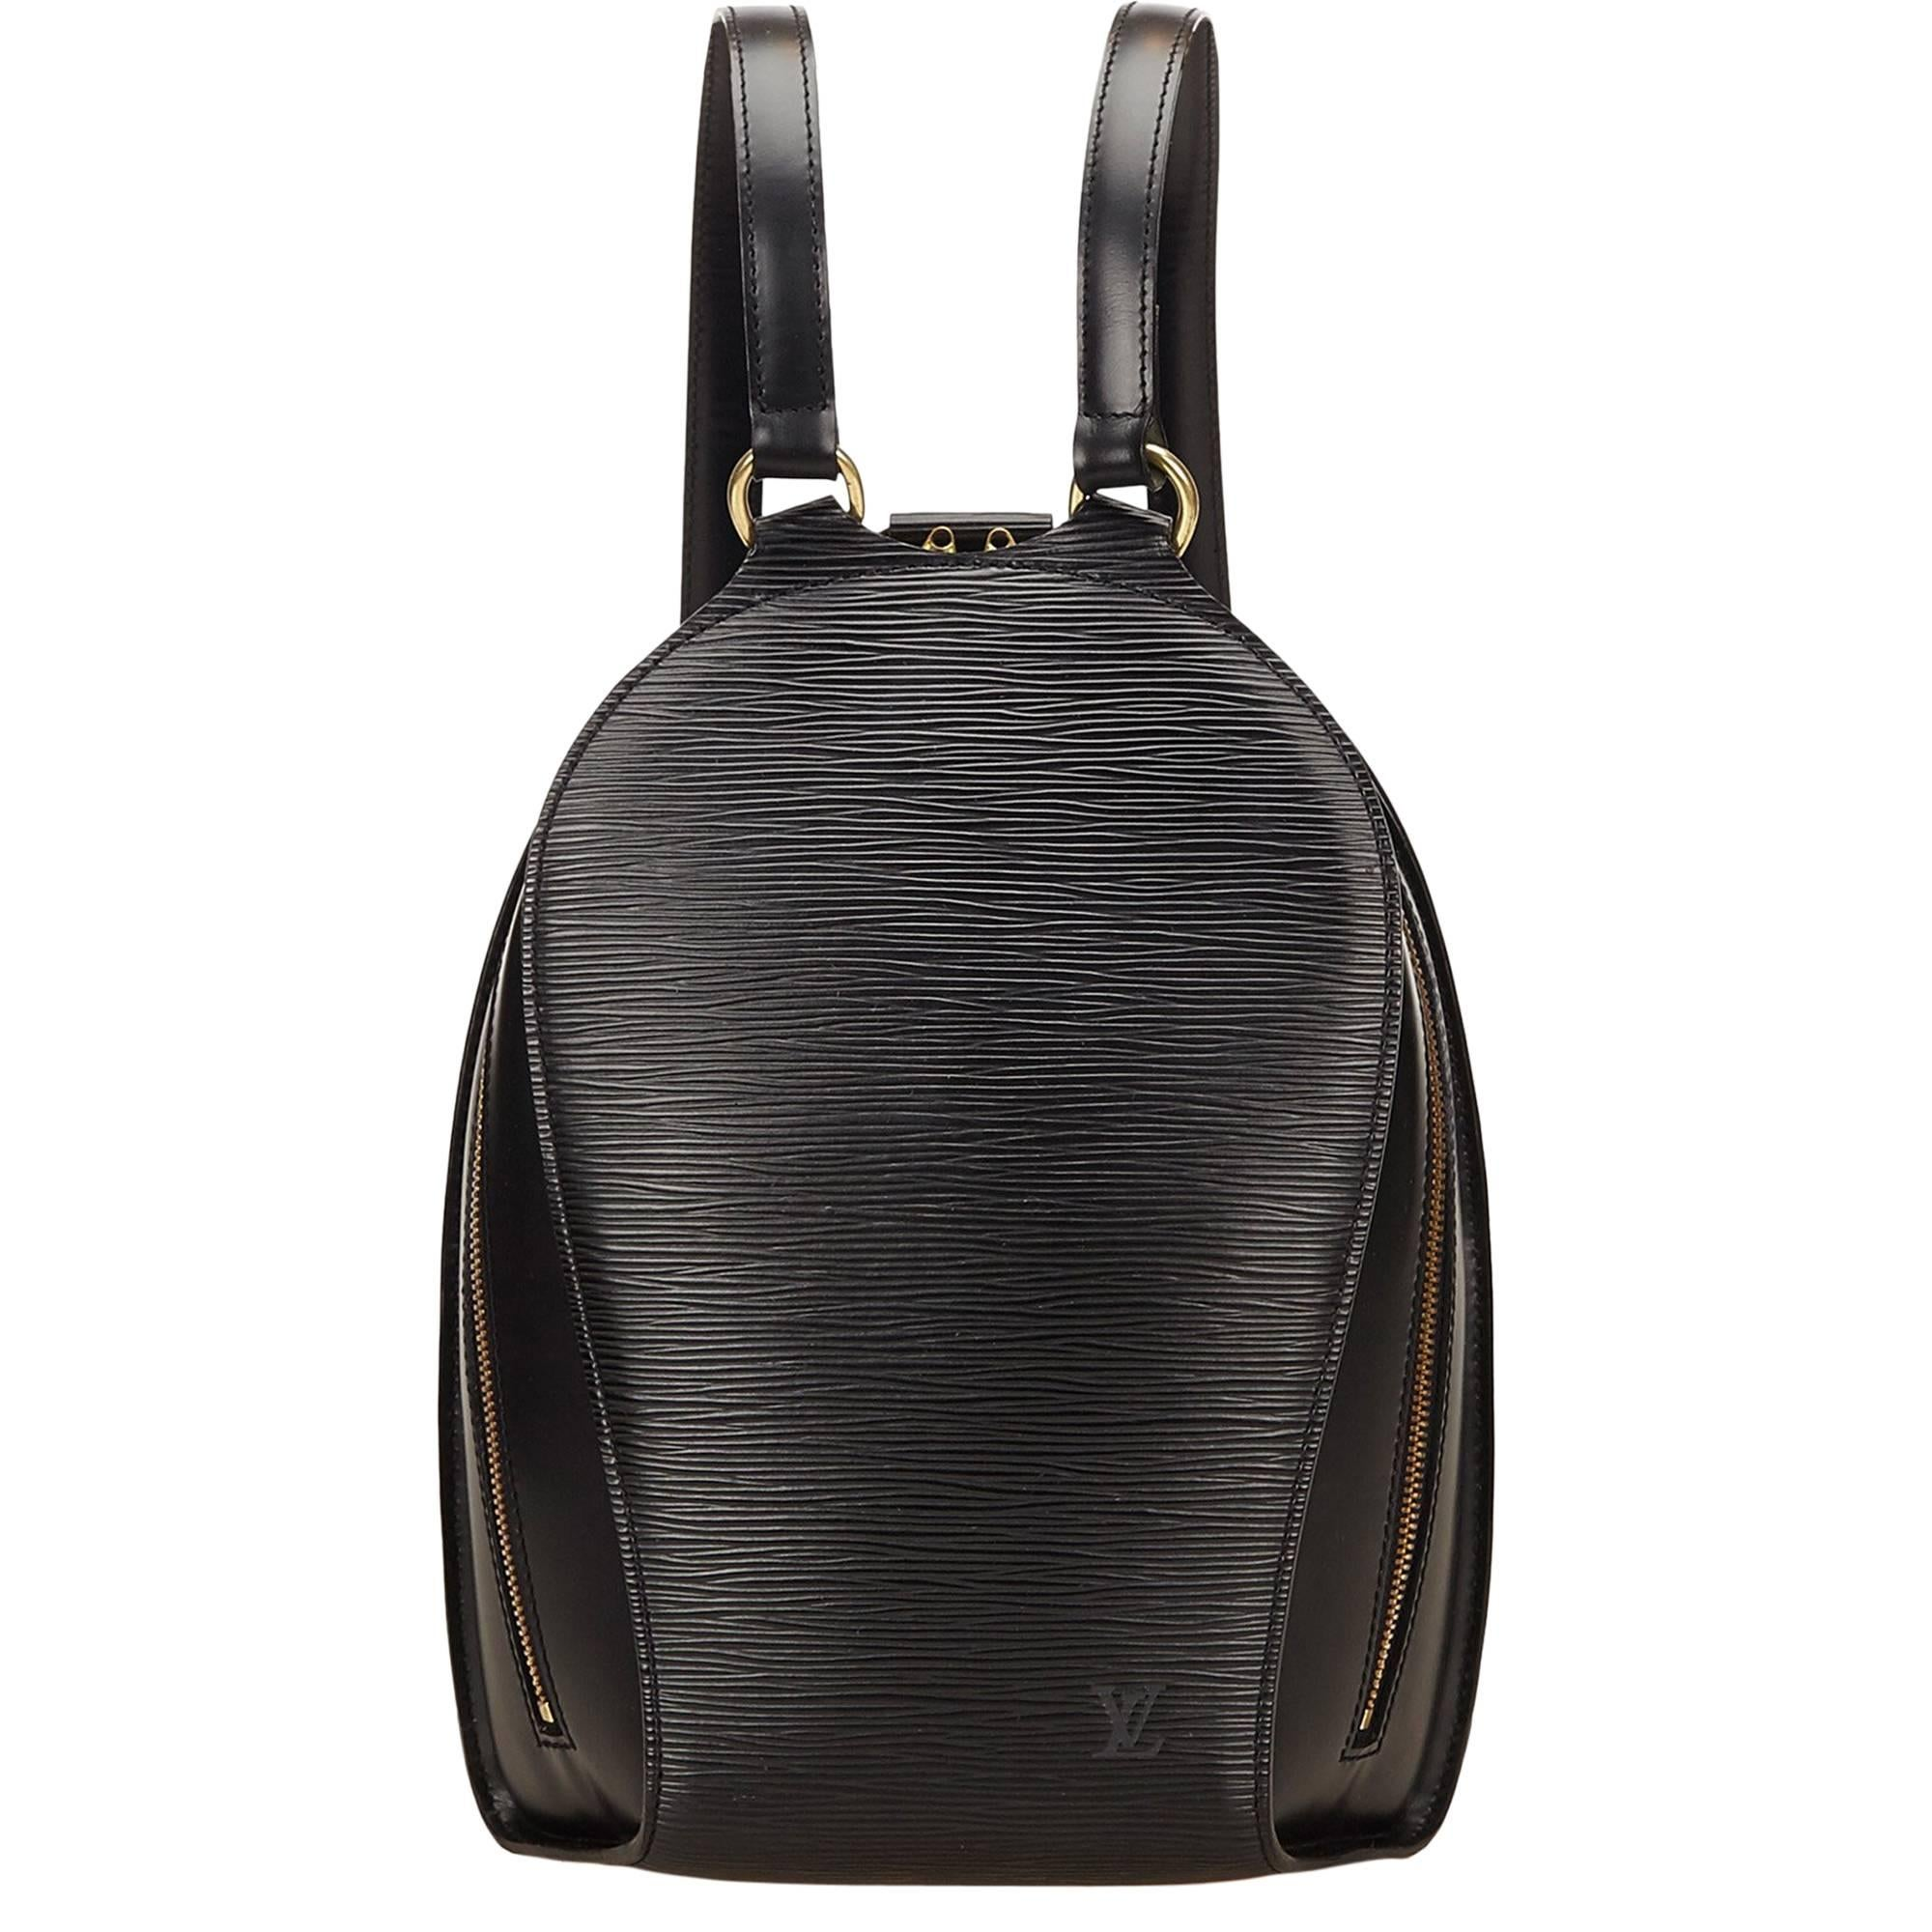 c27a1c37fd89 Louis Vuitton Black Epi Mabillon Backpack at 1stdibs